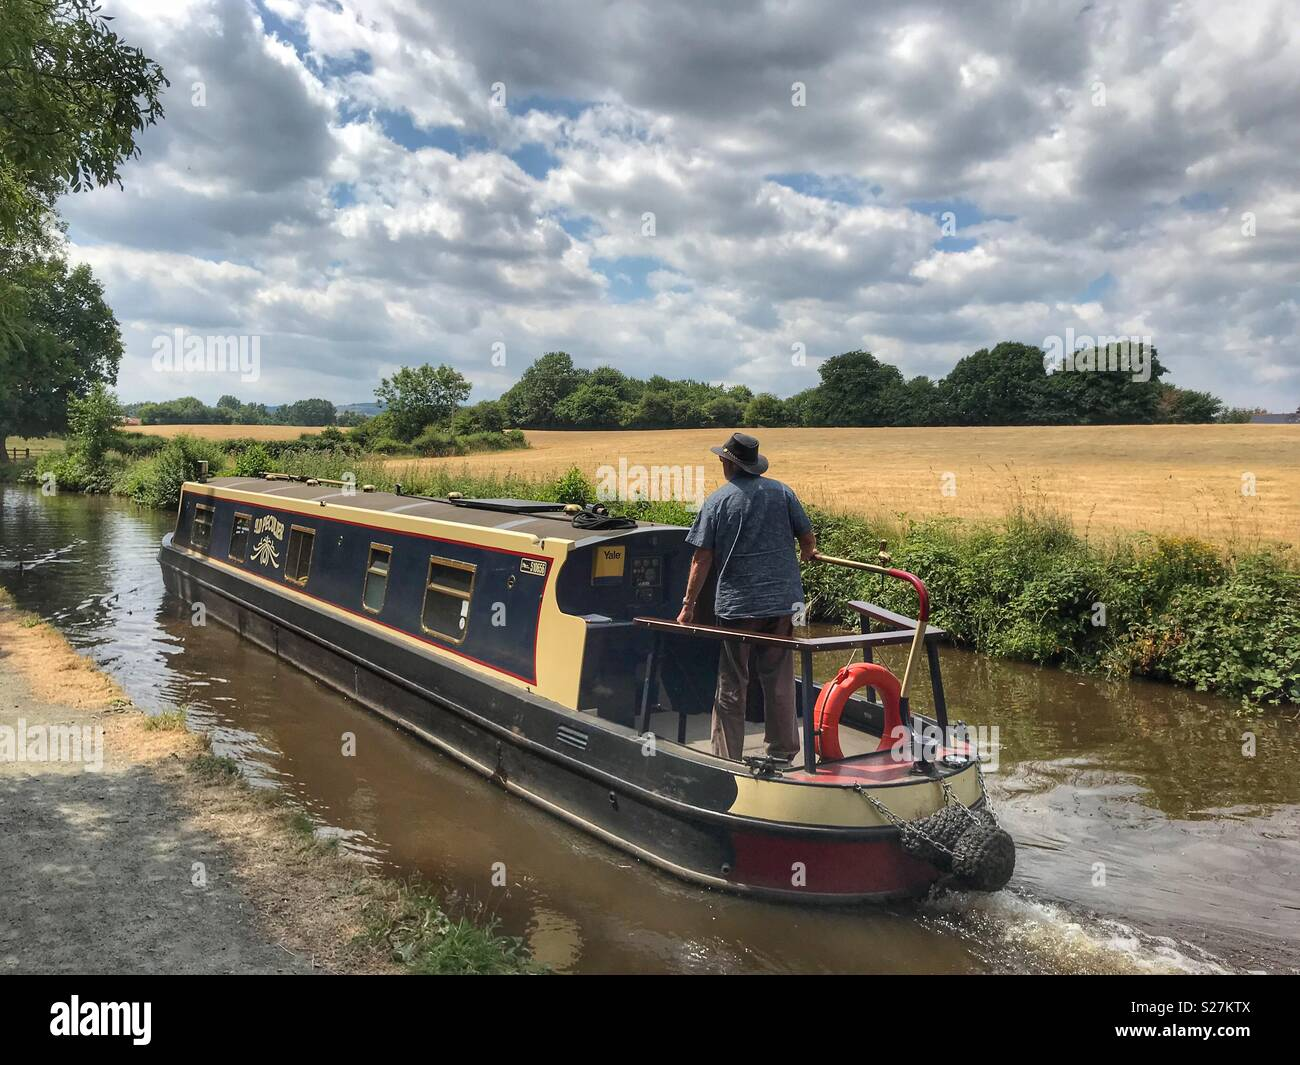 Canal Boating in Shropshire - Stock Image